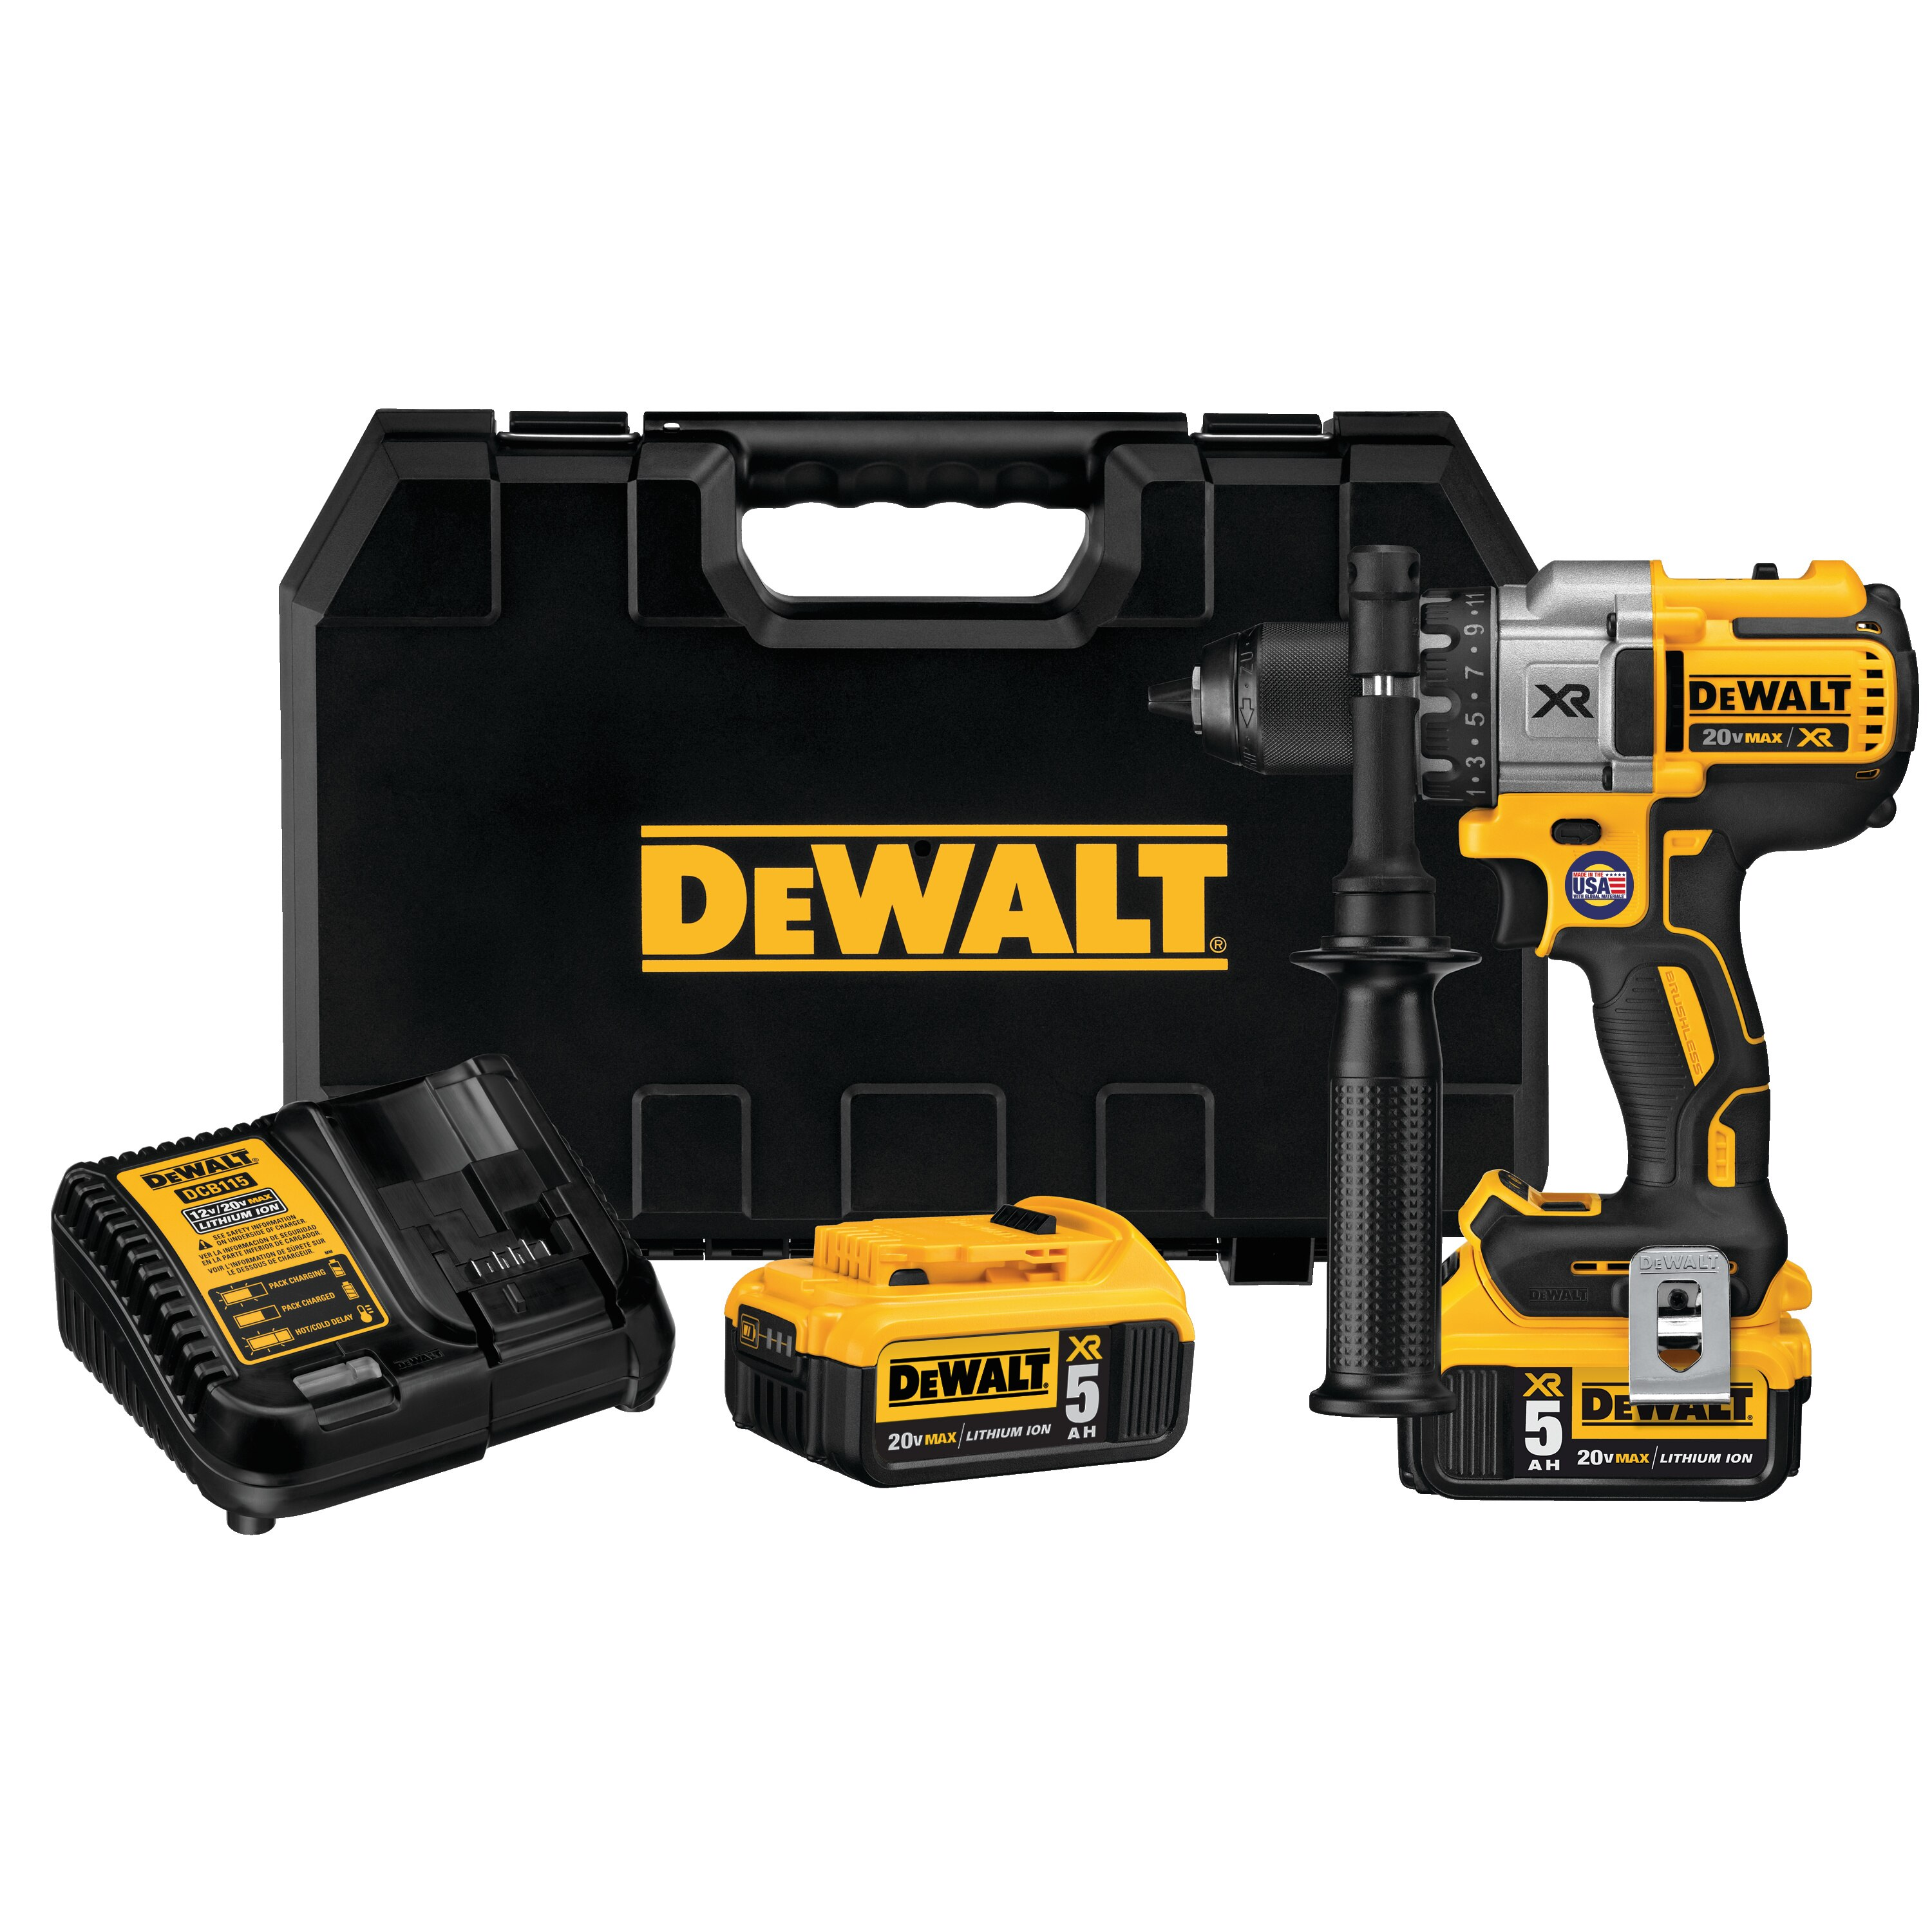 Tool Drill Dewalt 18V Heavy Duty Carrying Case Complete Kit Comes with Battery